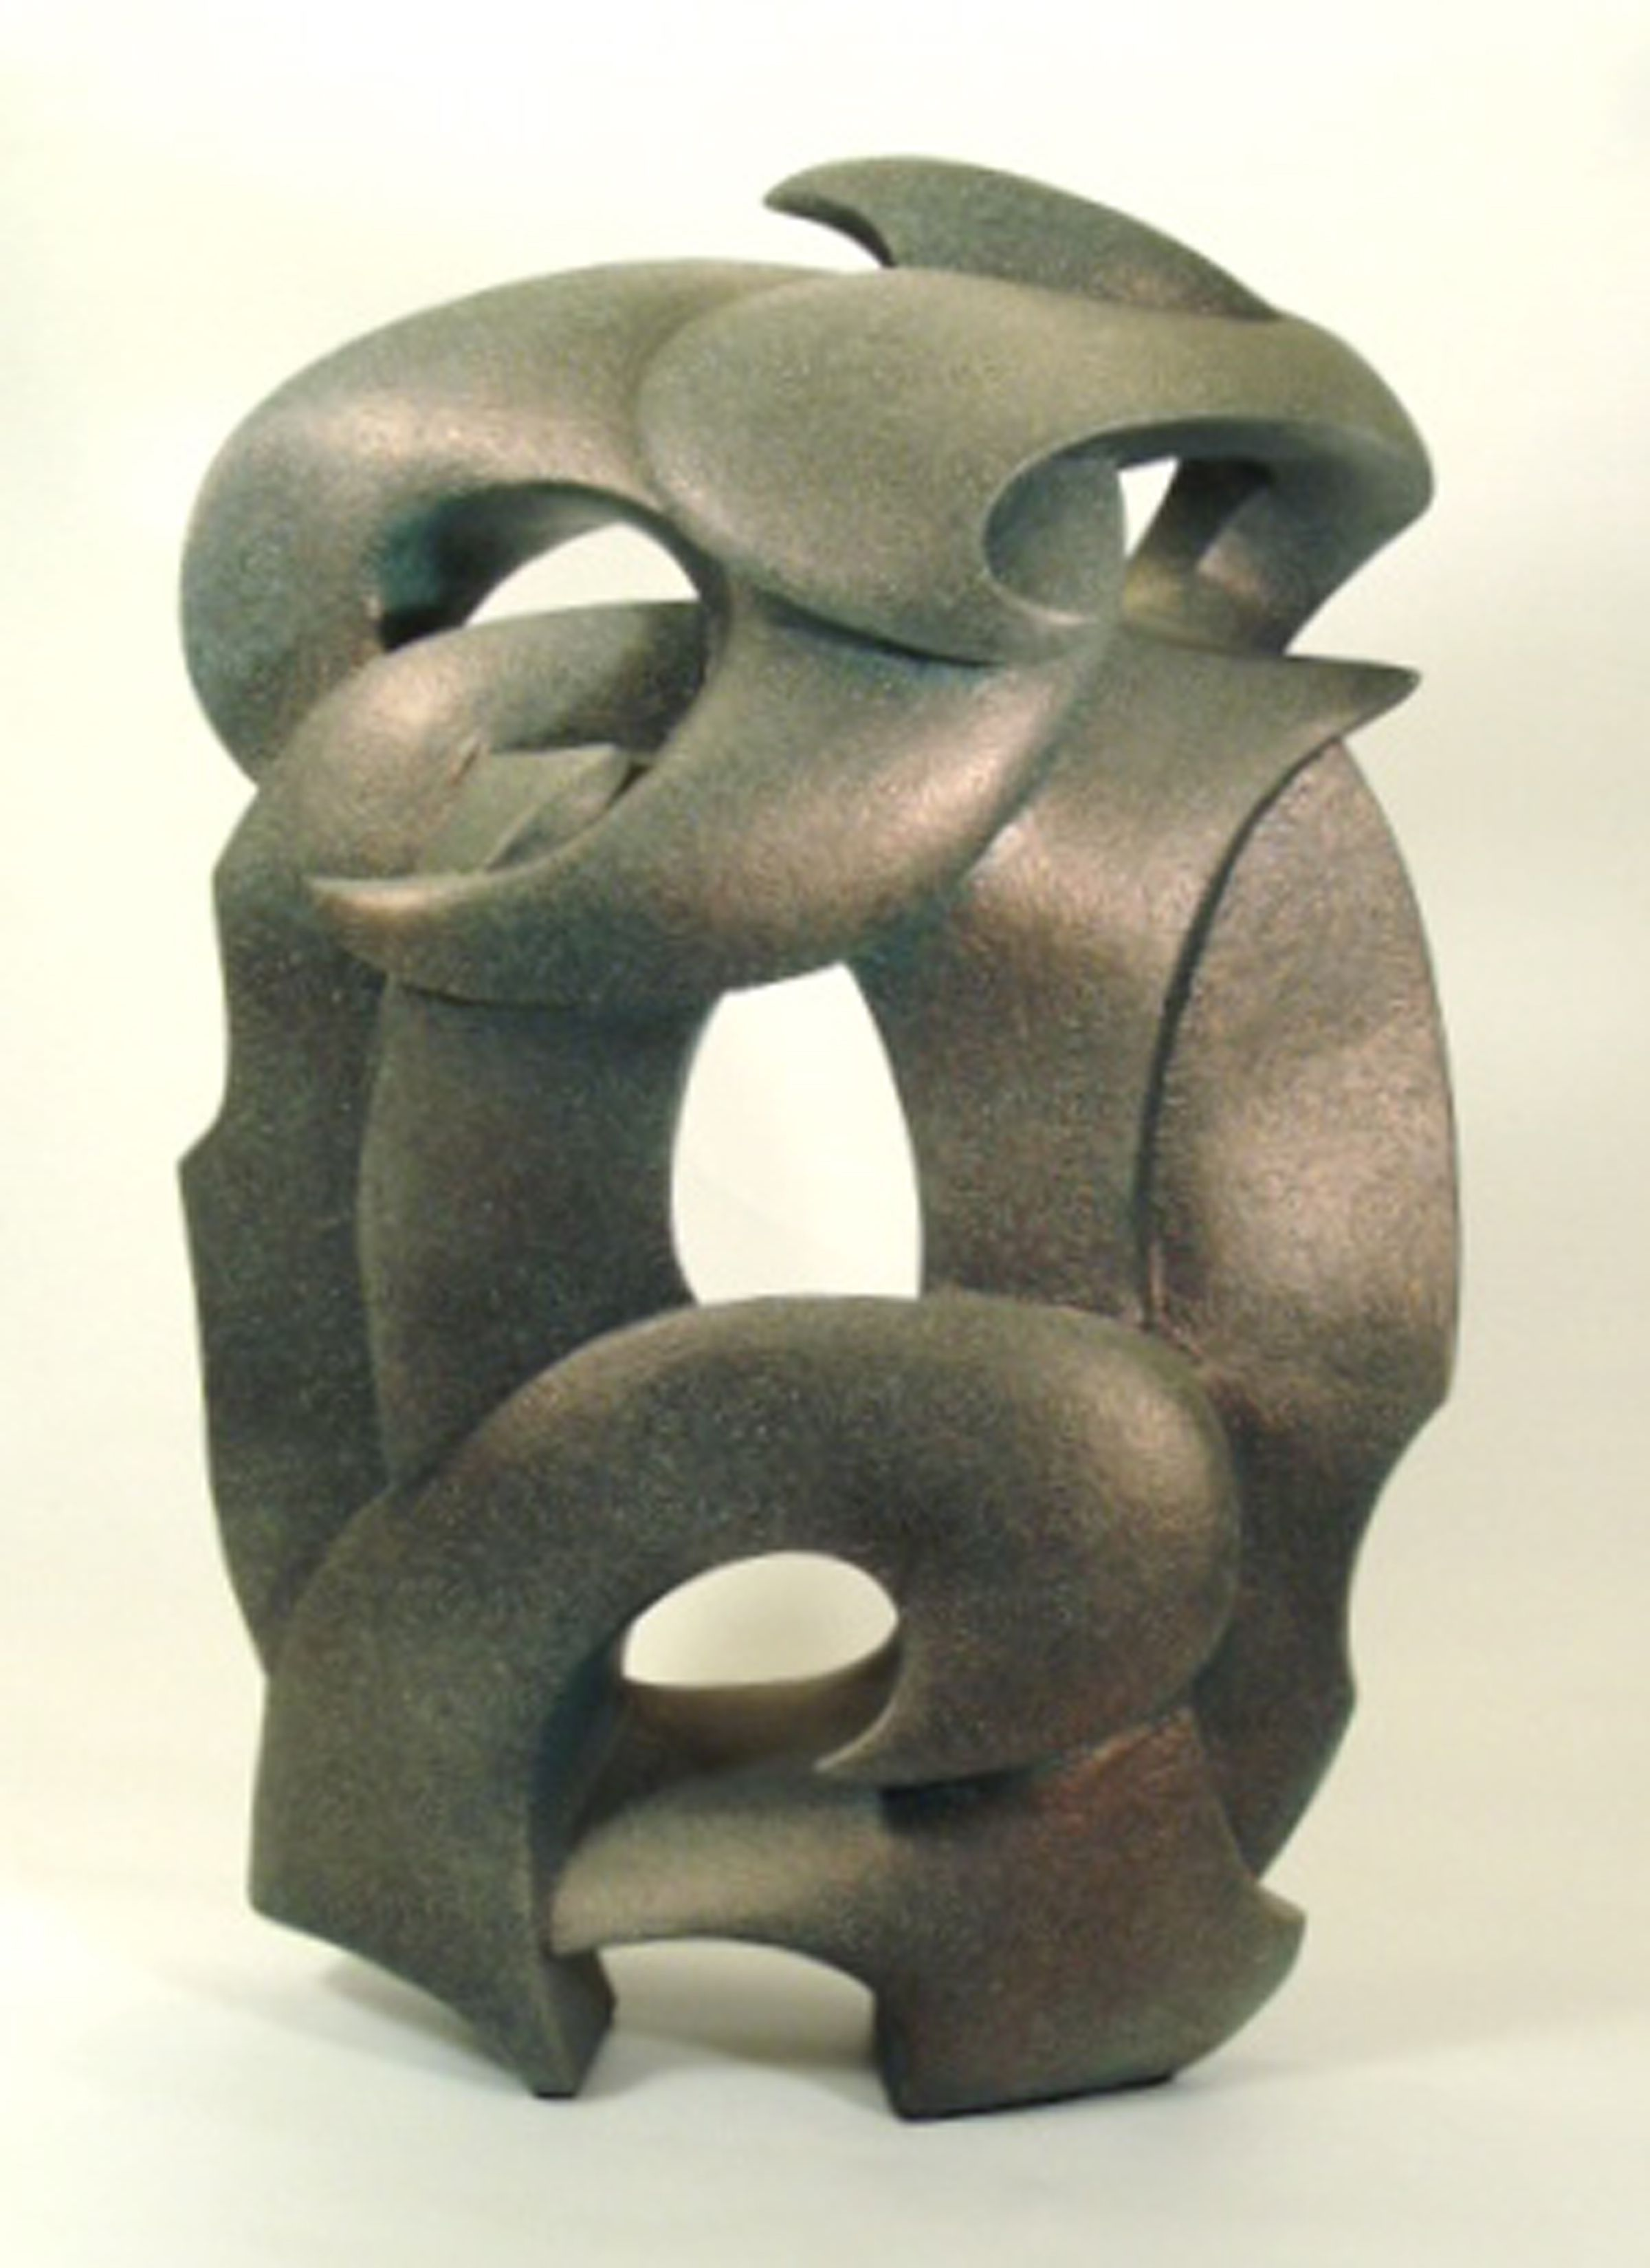 "Abstract Sculpture by Lena Arice Lucas GENERATIONS view 1 - coil built / constructed clay, acrylic, 26"" tall x 20"" wide (at widest)"